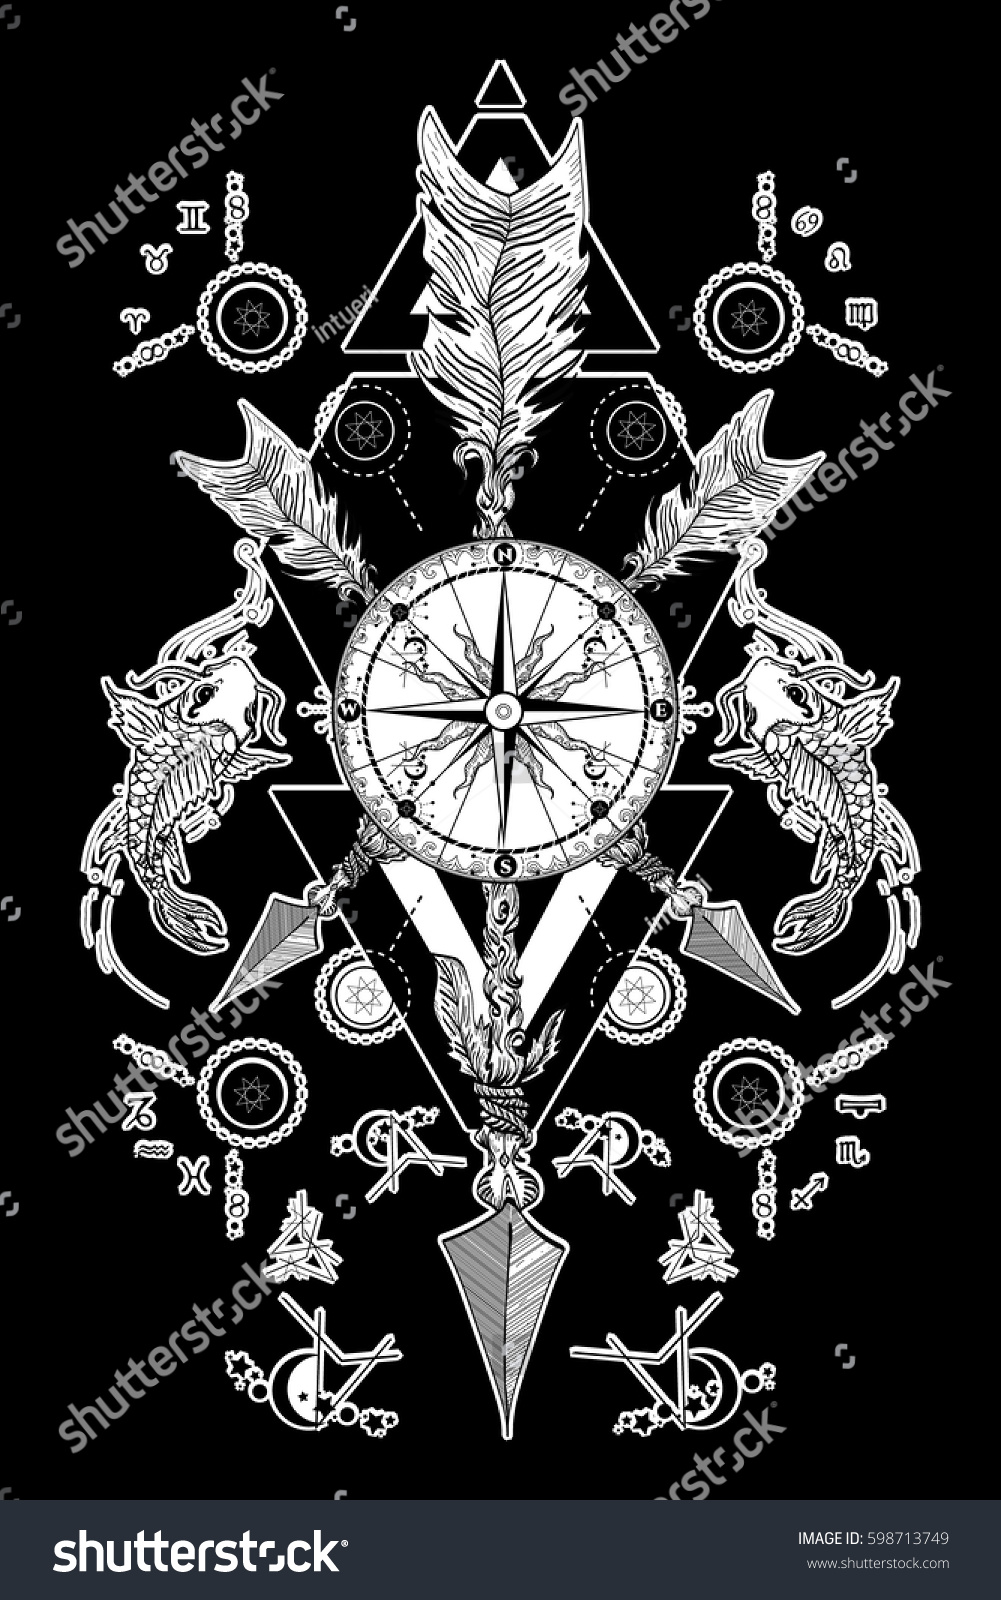 Rose Compass Crossed Arrows Tattoo Magical Stock Vector Royalty